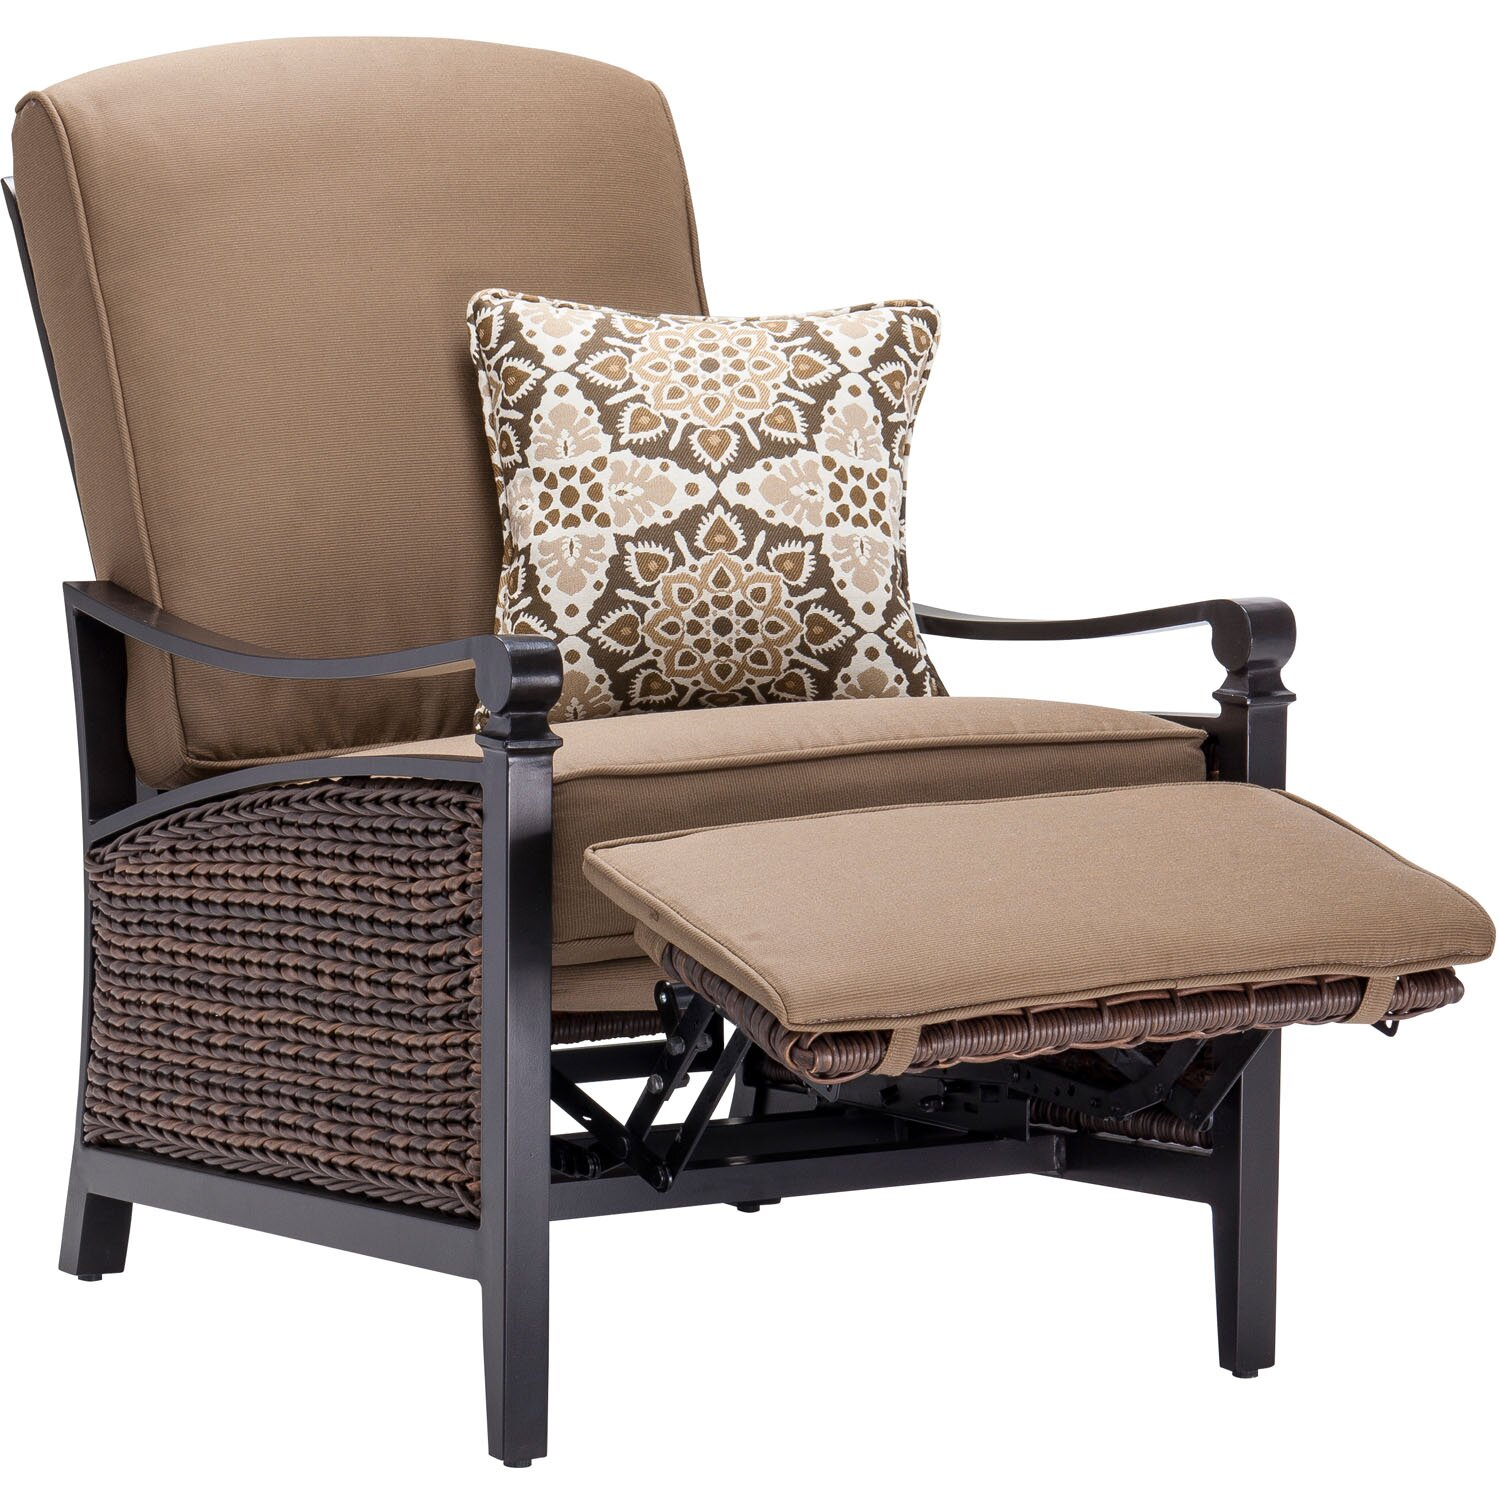 La Z Boy Carson Luxury Outdoor Recliner Chair With